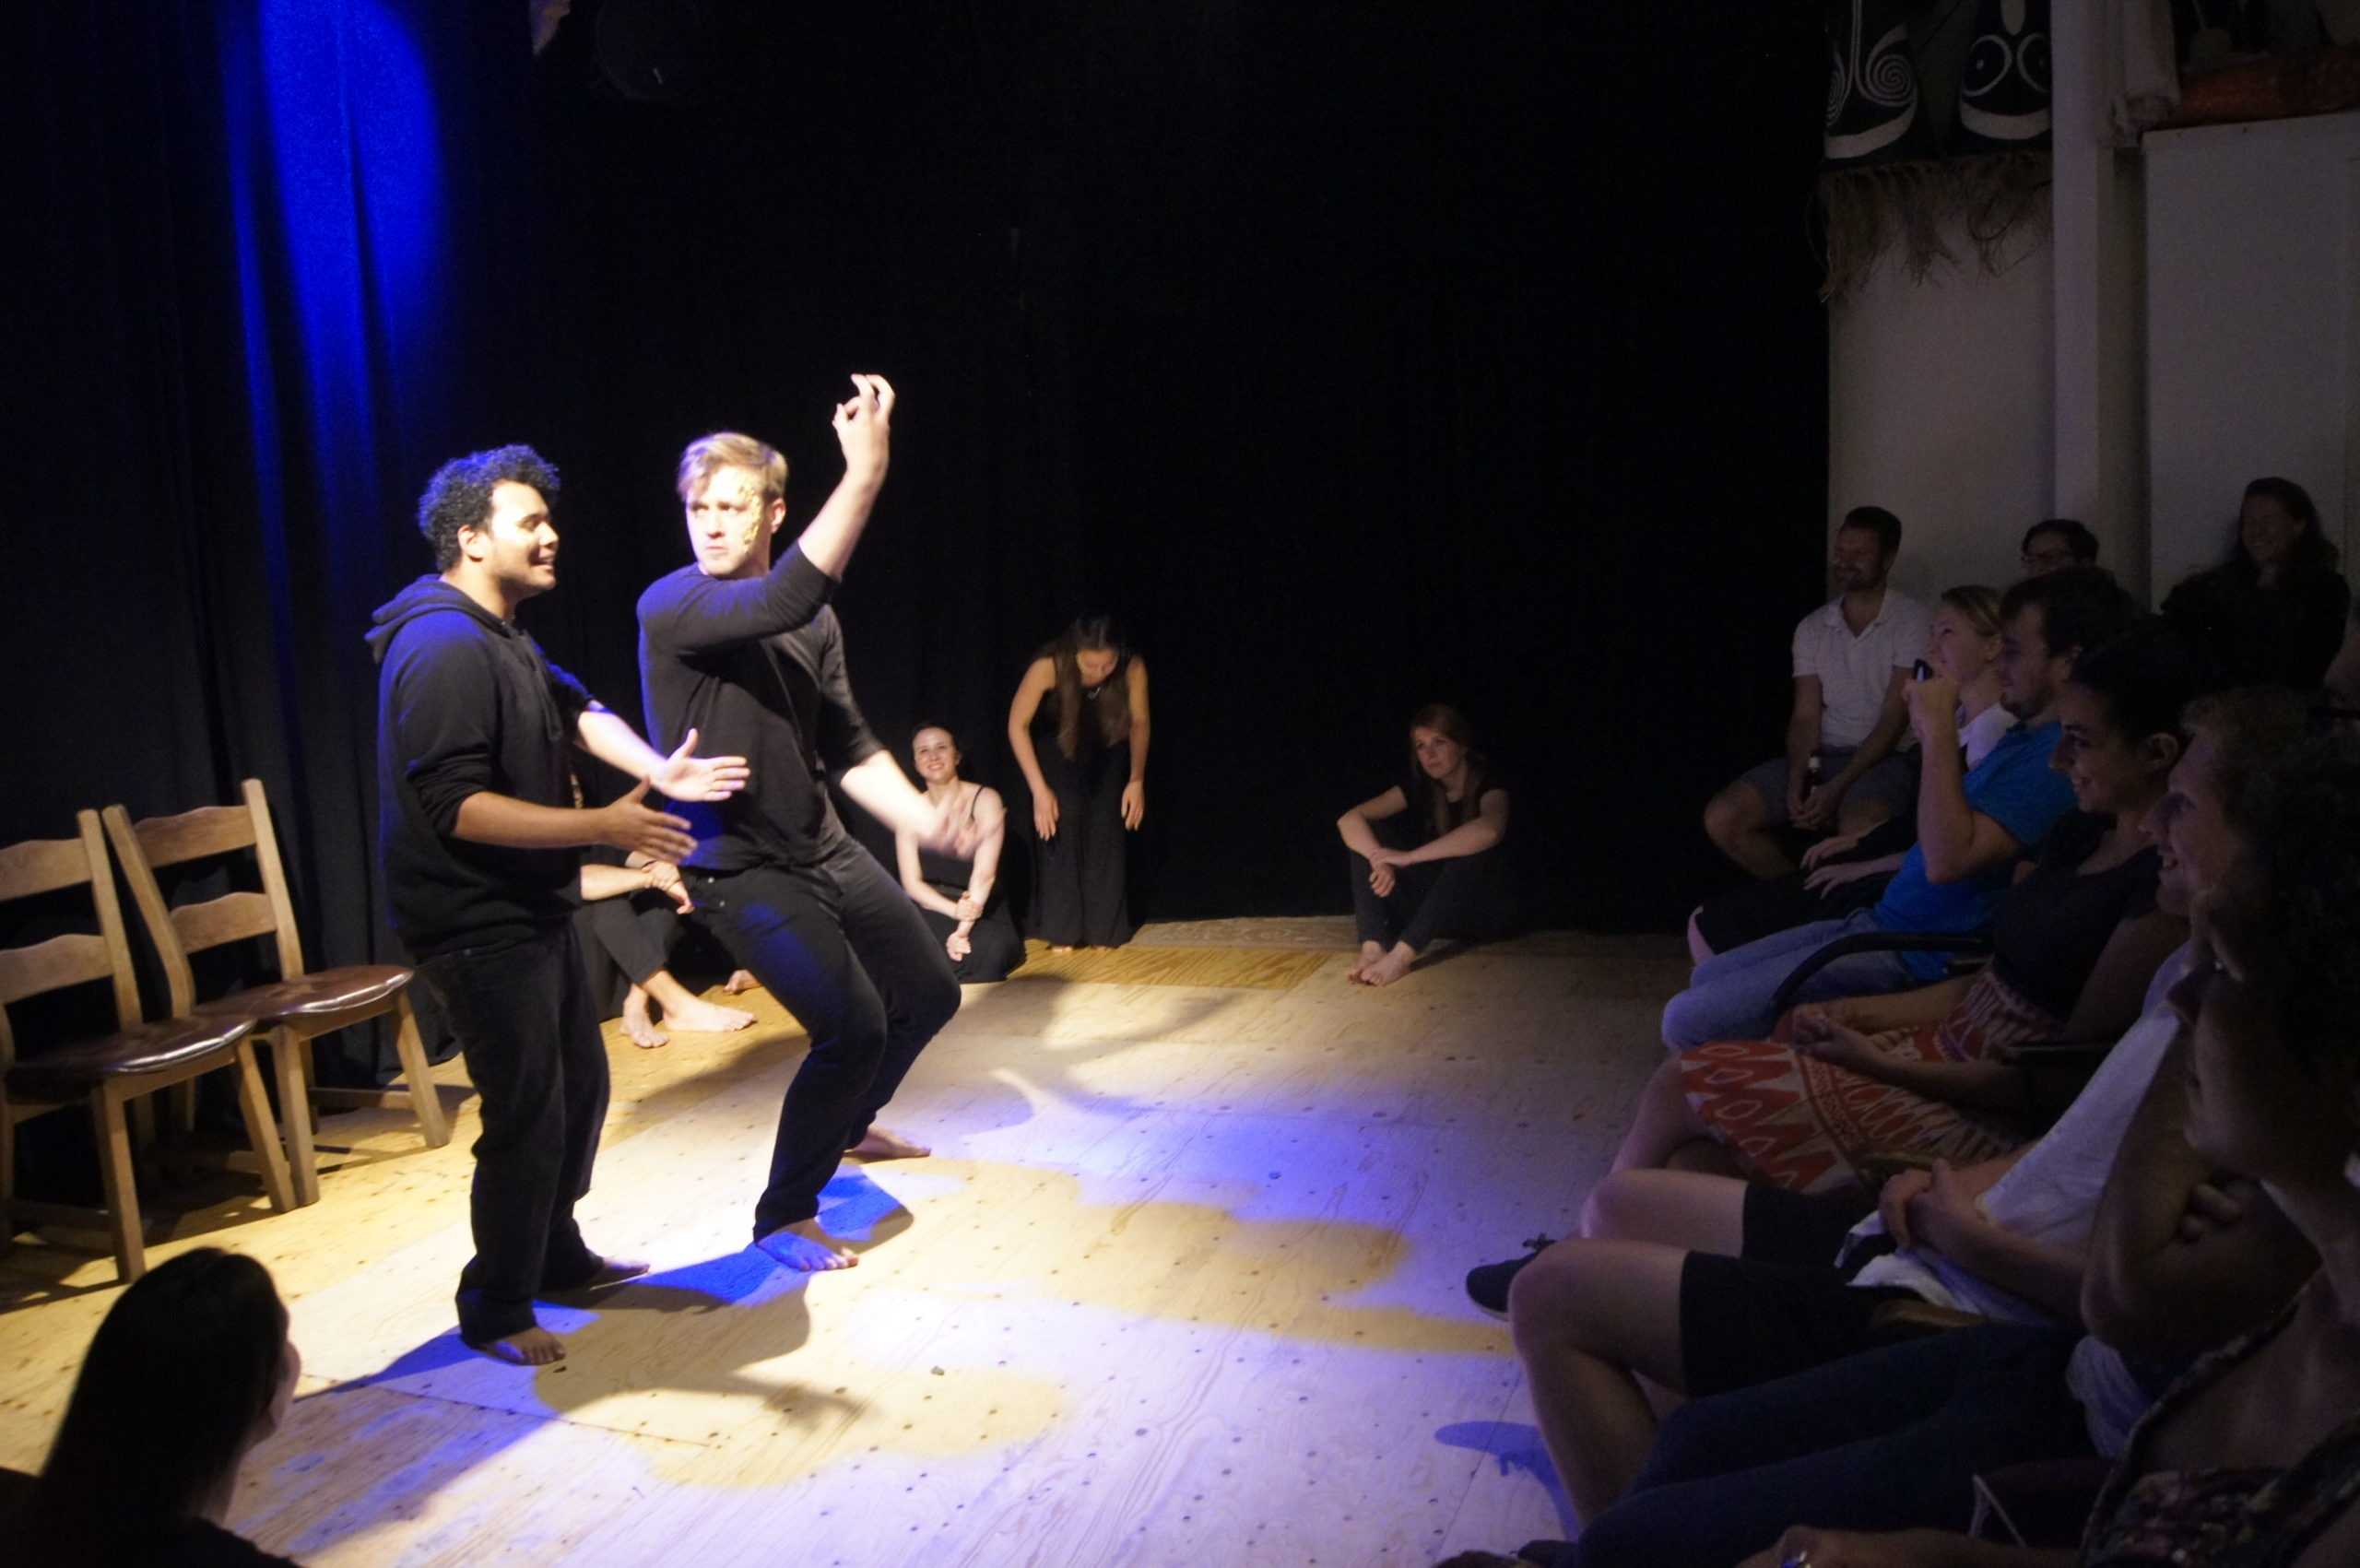 Photo from the theatre performance Keeping up with the Greeks. On the left of the photo, two male actors on stage, standing, wearing black clothes, making gestures like they're dancing. On the right, the audience.